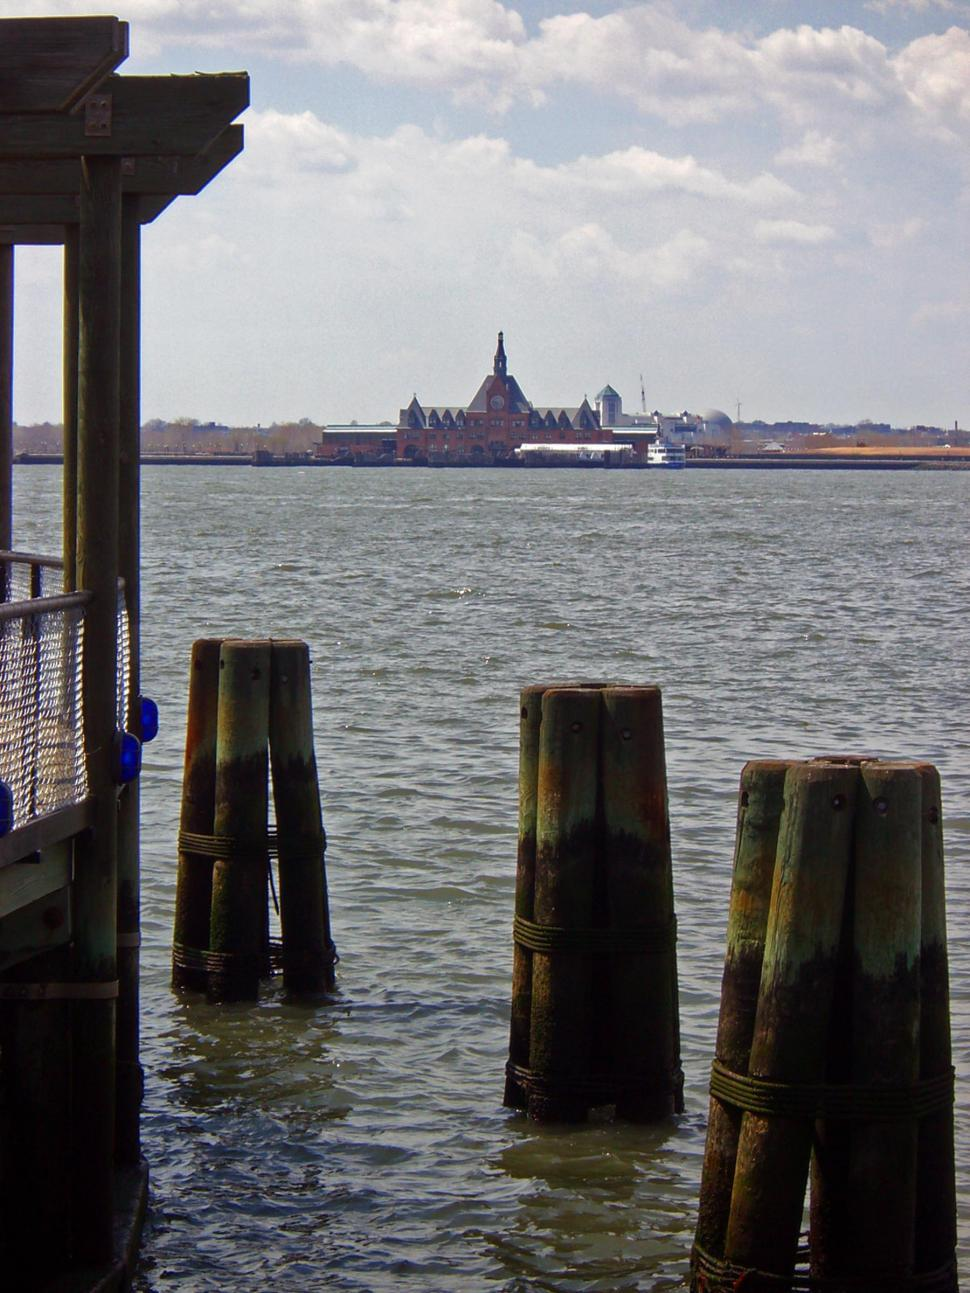 Download Free Stock HD Photo of Ellis Island and New Jersey View  Online